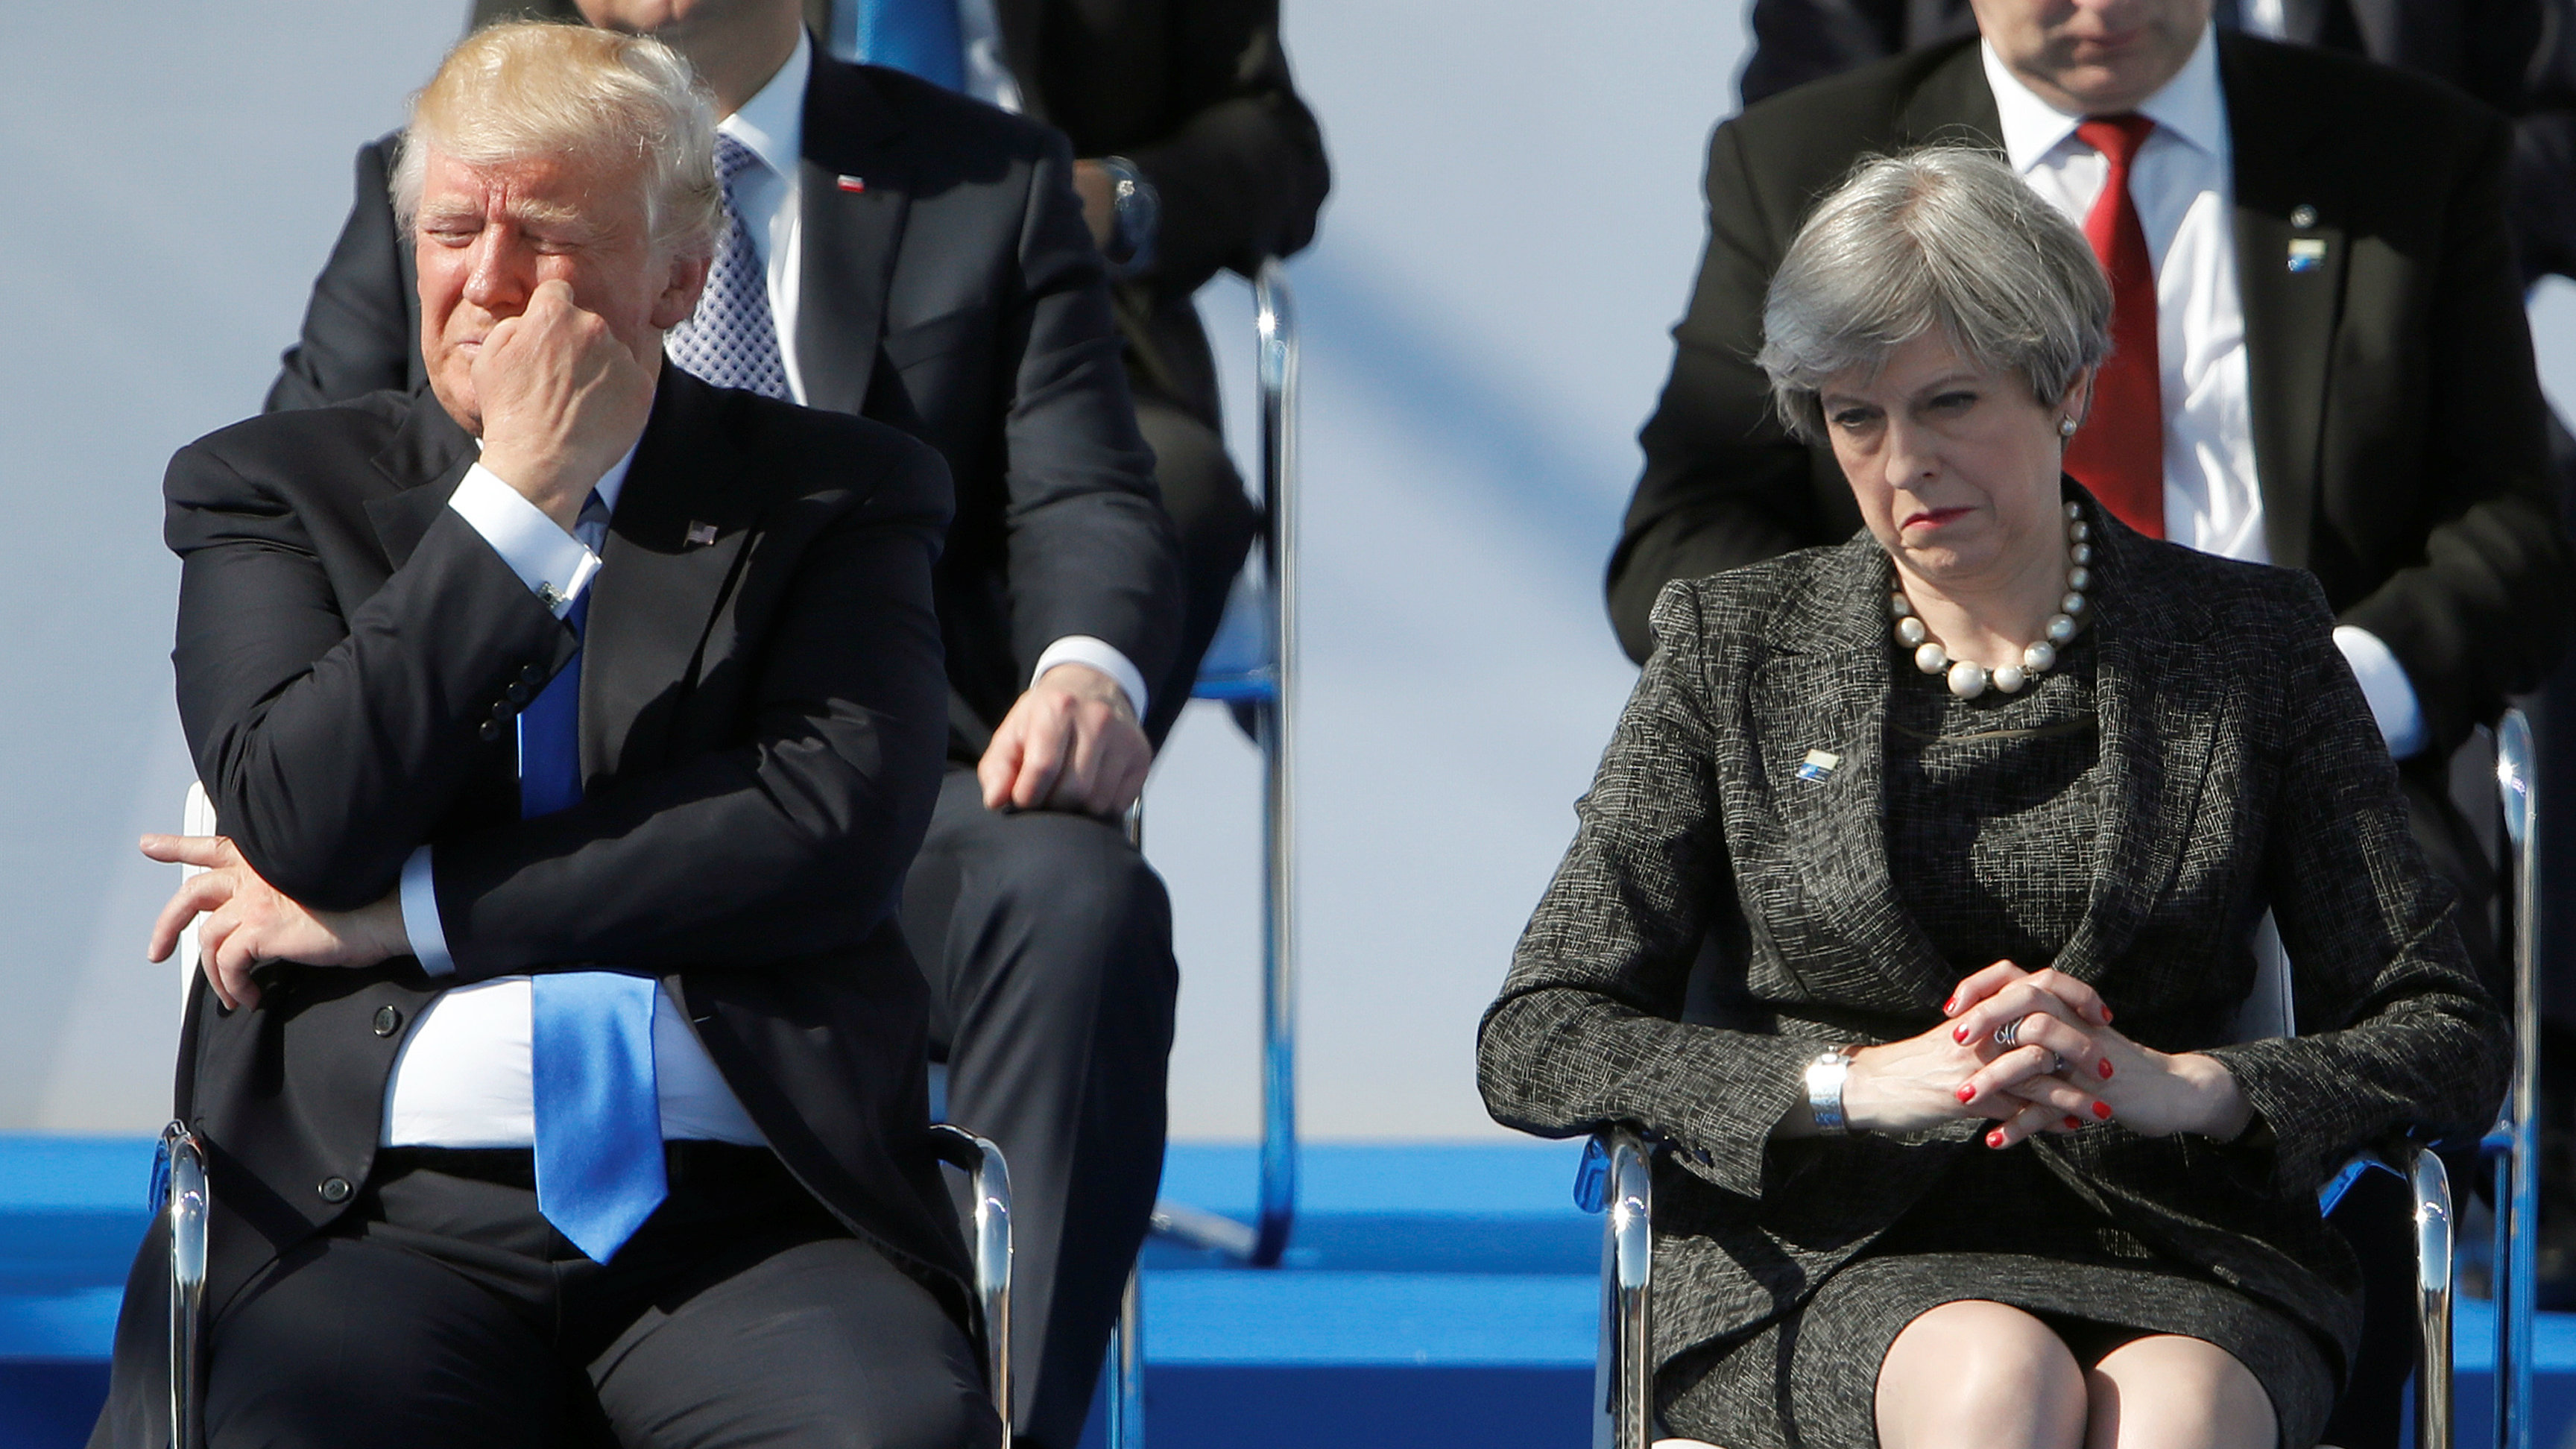 US President Donald Trump and British Prime Minister Theresa May at NATO meeting